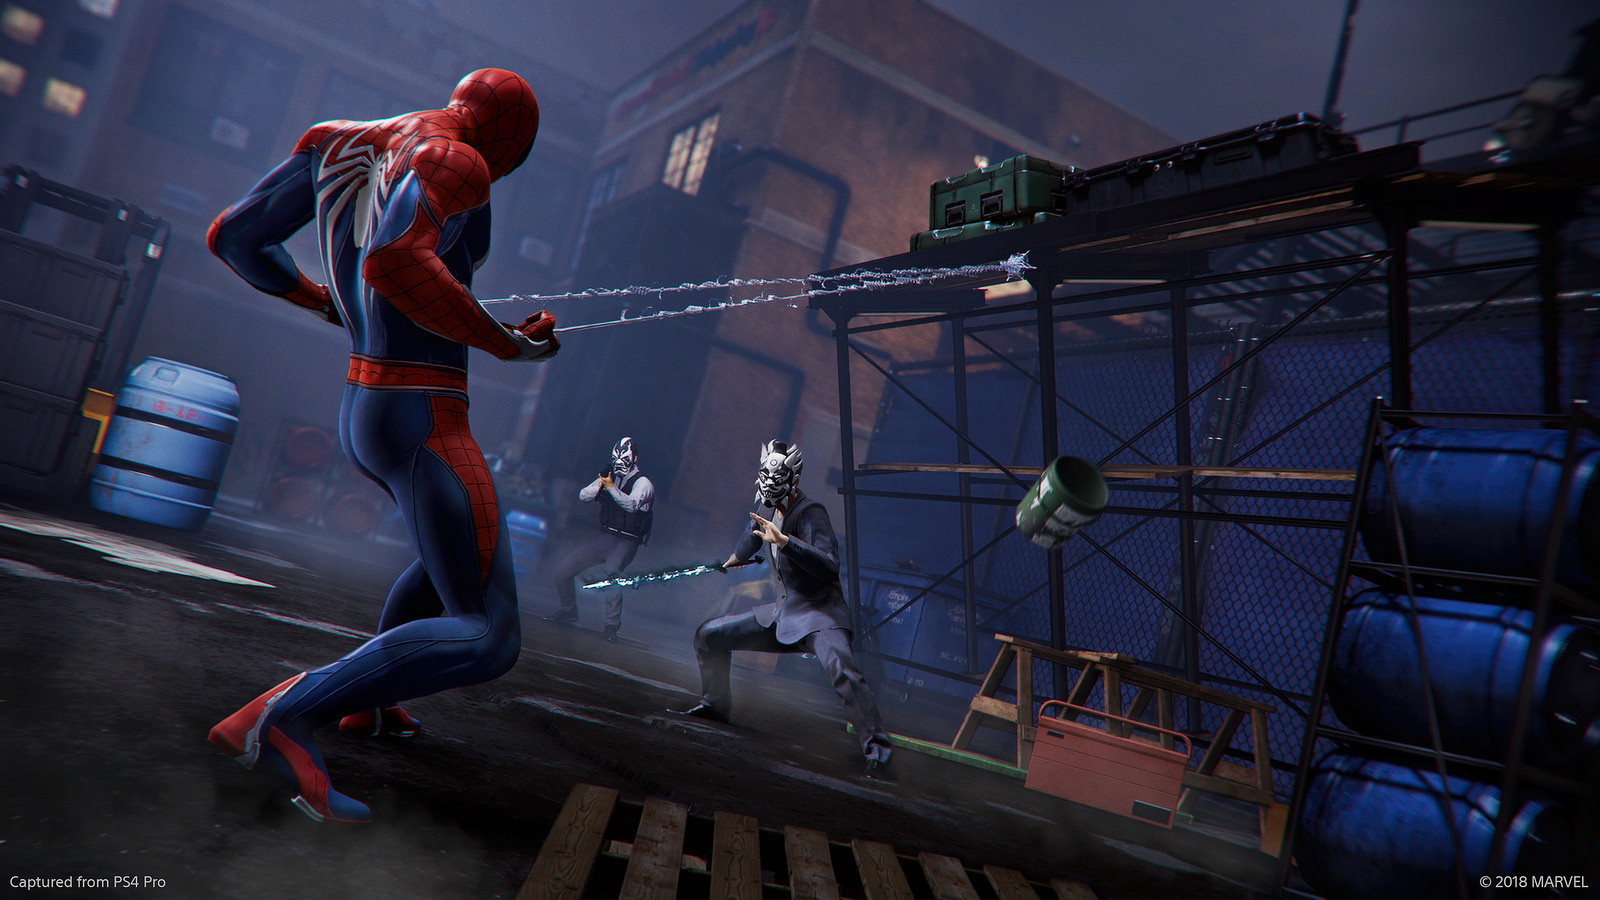 Free Spider-Man PS4 Theme Released to Celebrate Launch